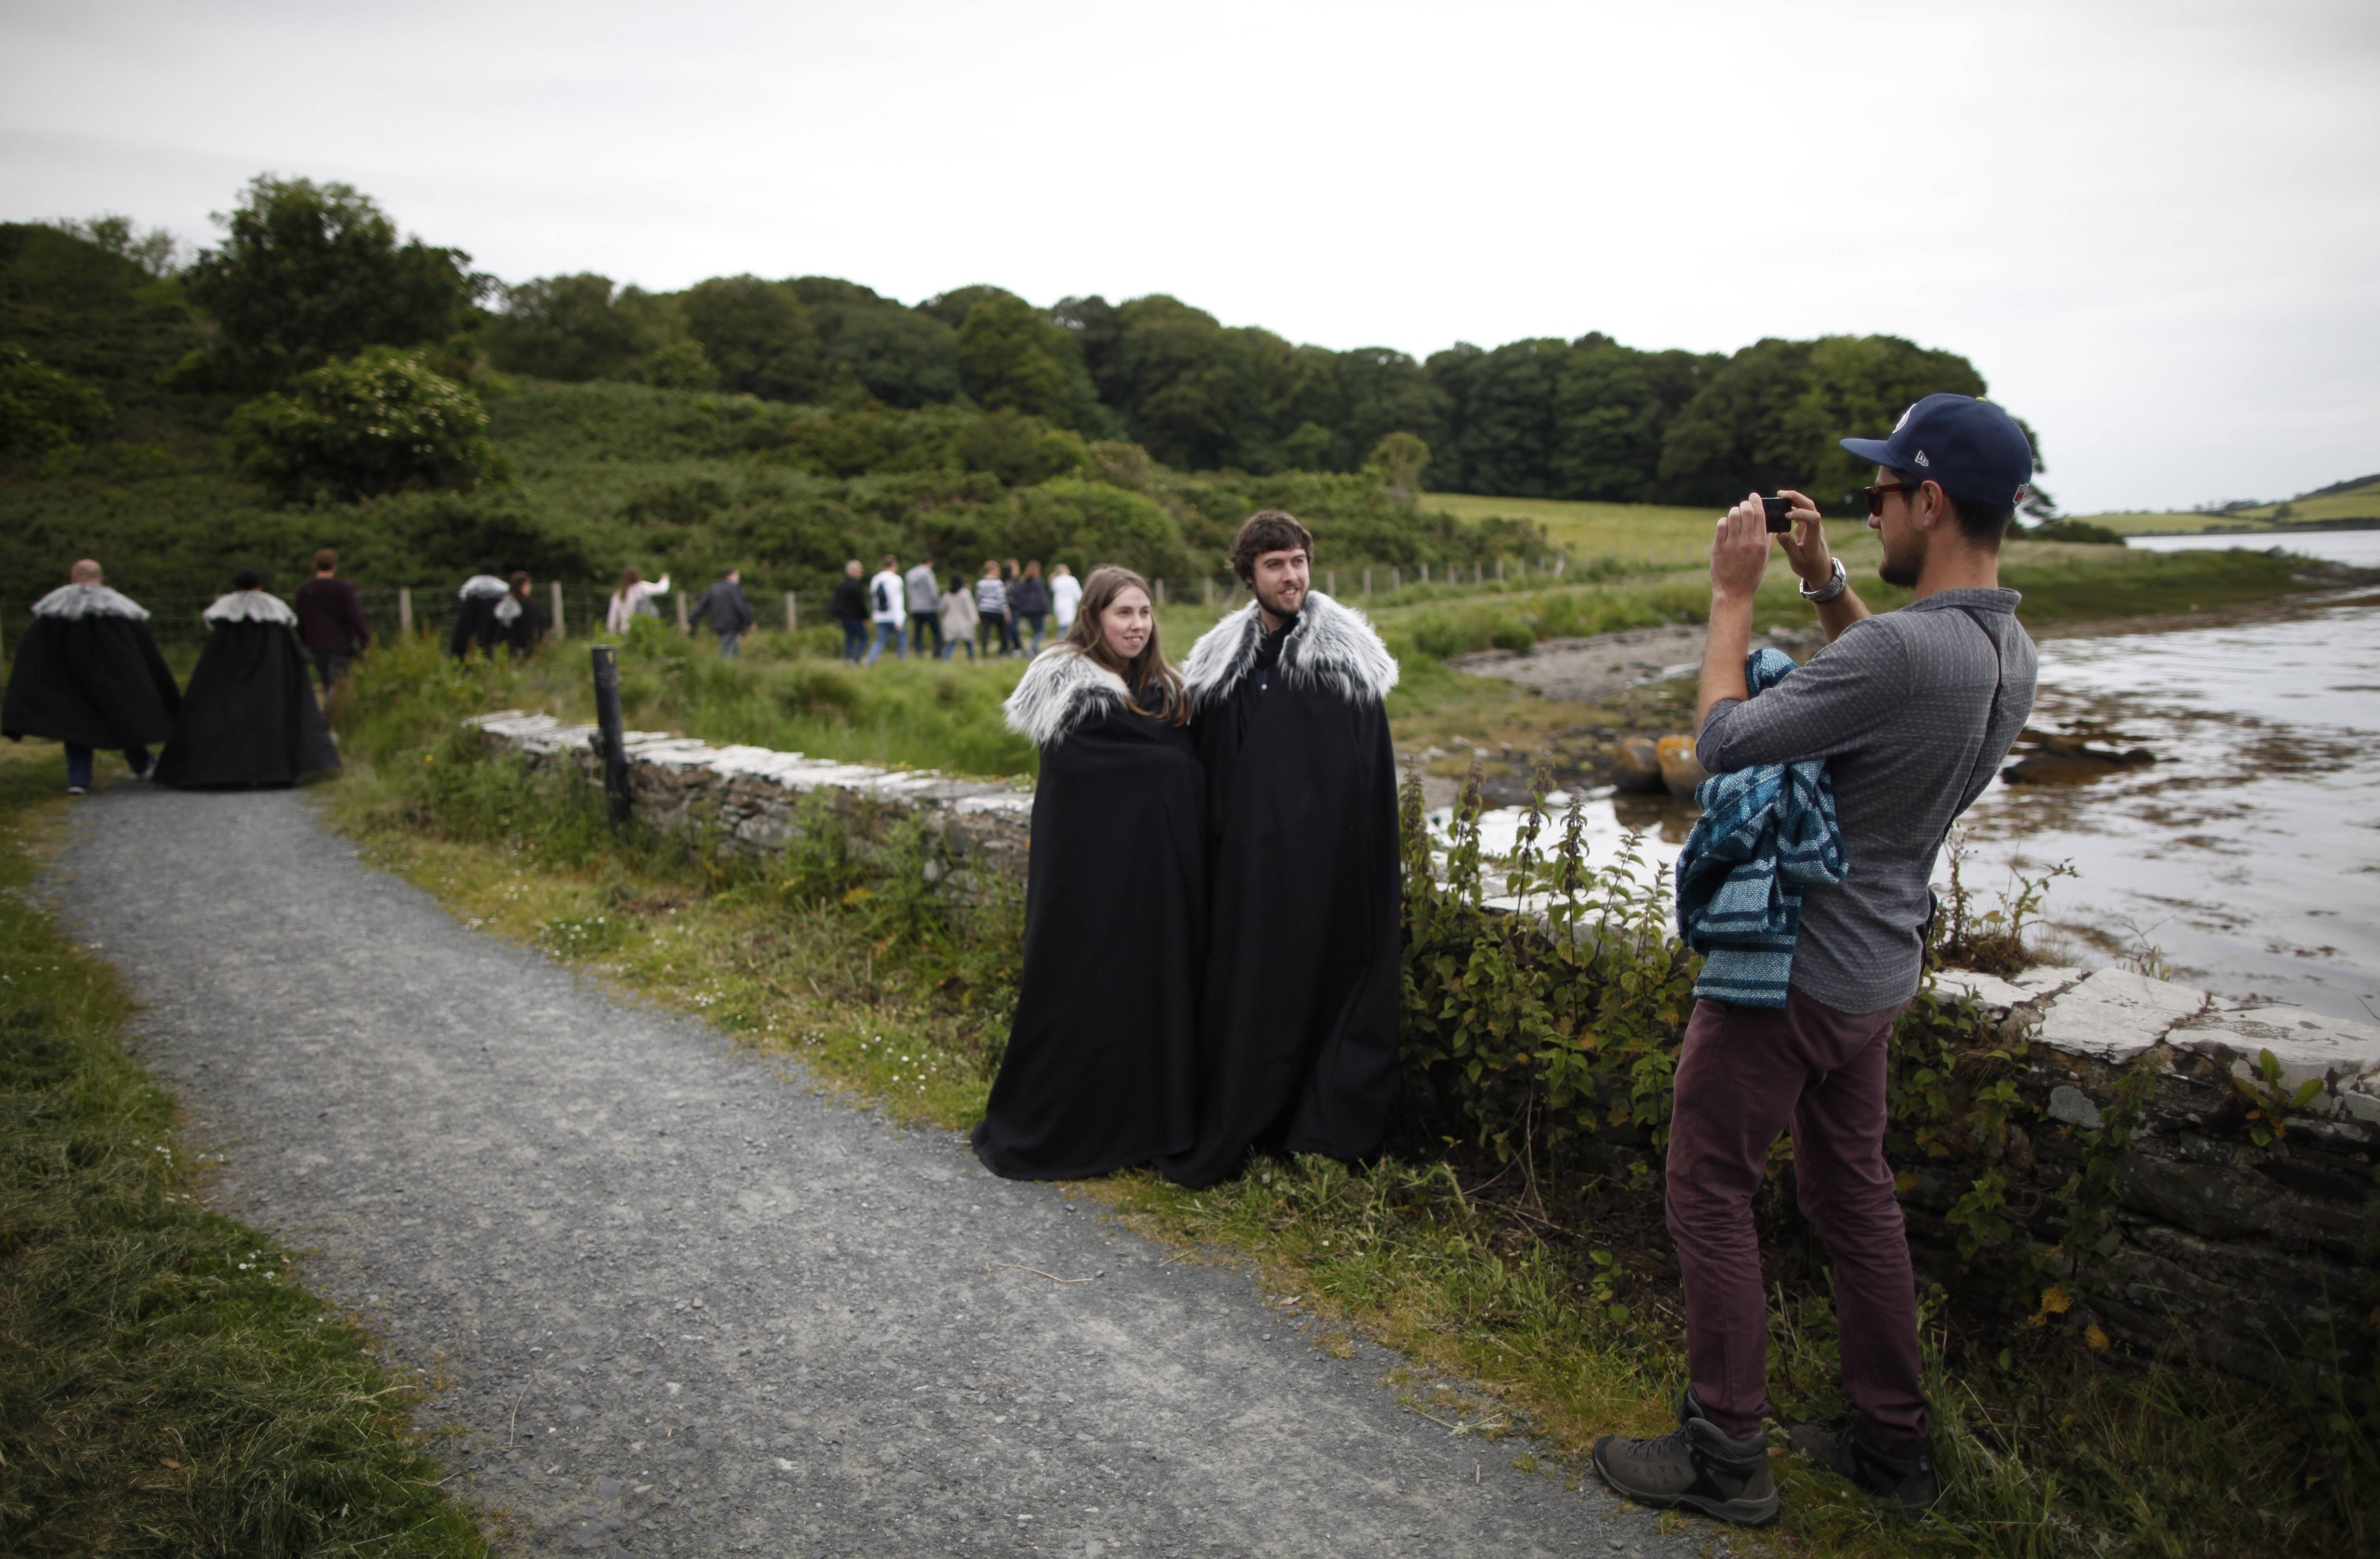 Game of Thrones fans stop for a picture on their way to Audleys field and castle in Strangford, Northern Ireland. Audleys field and castle was used for filming season 1 as King Robert Baratheon and his retinue arrive at Winterfell.